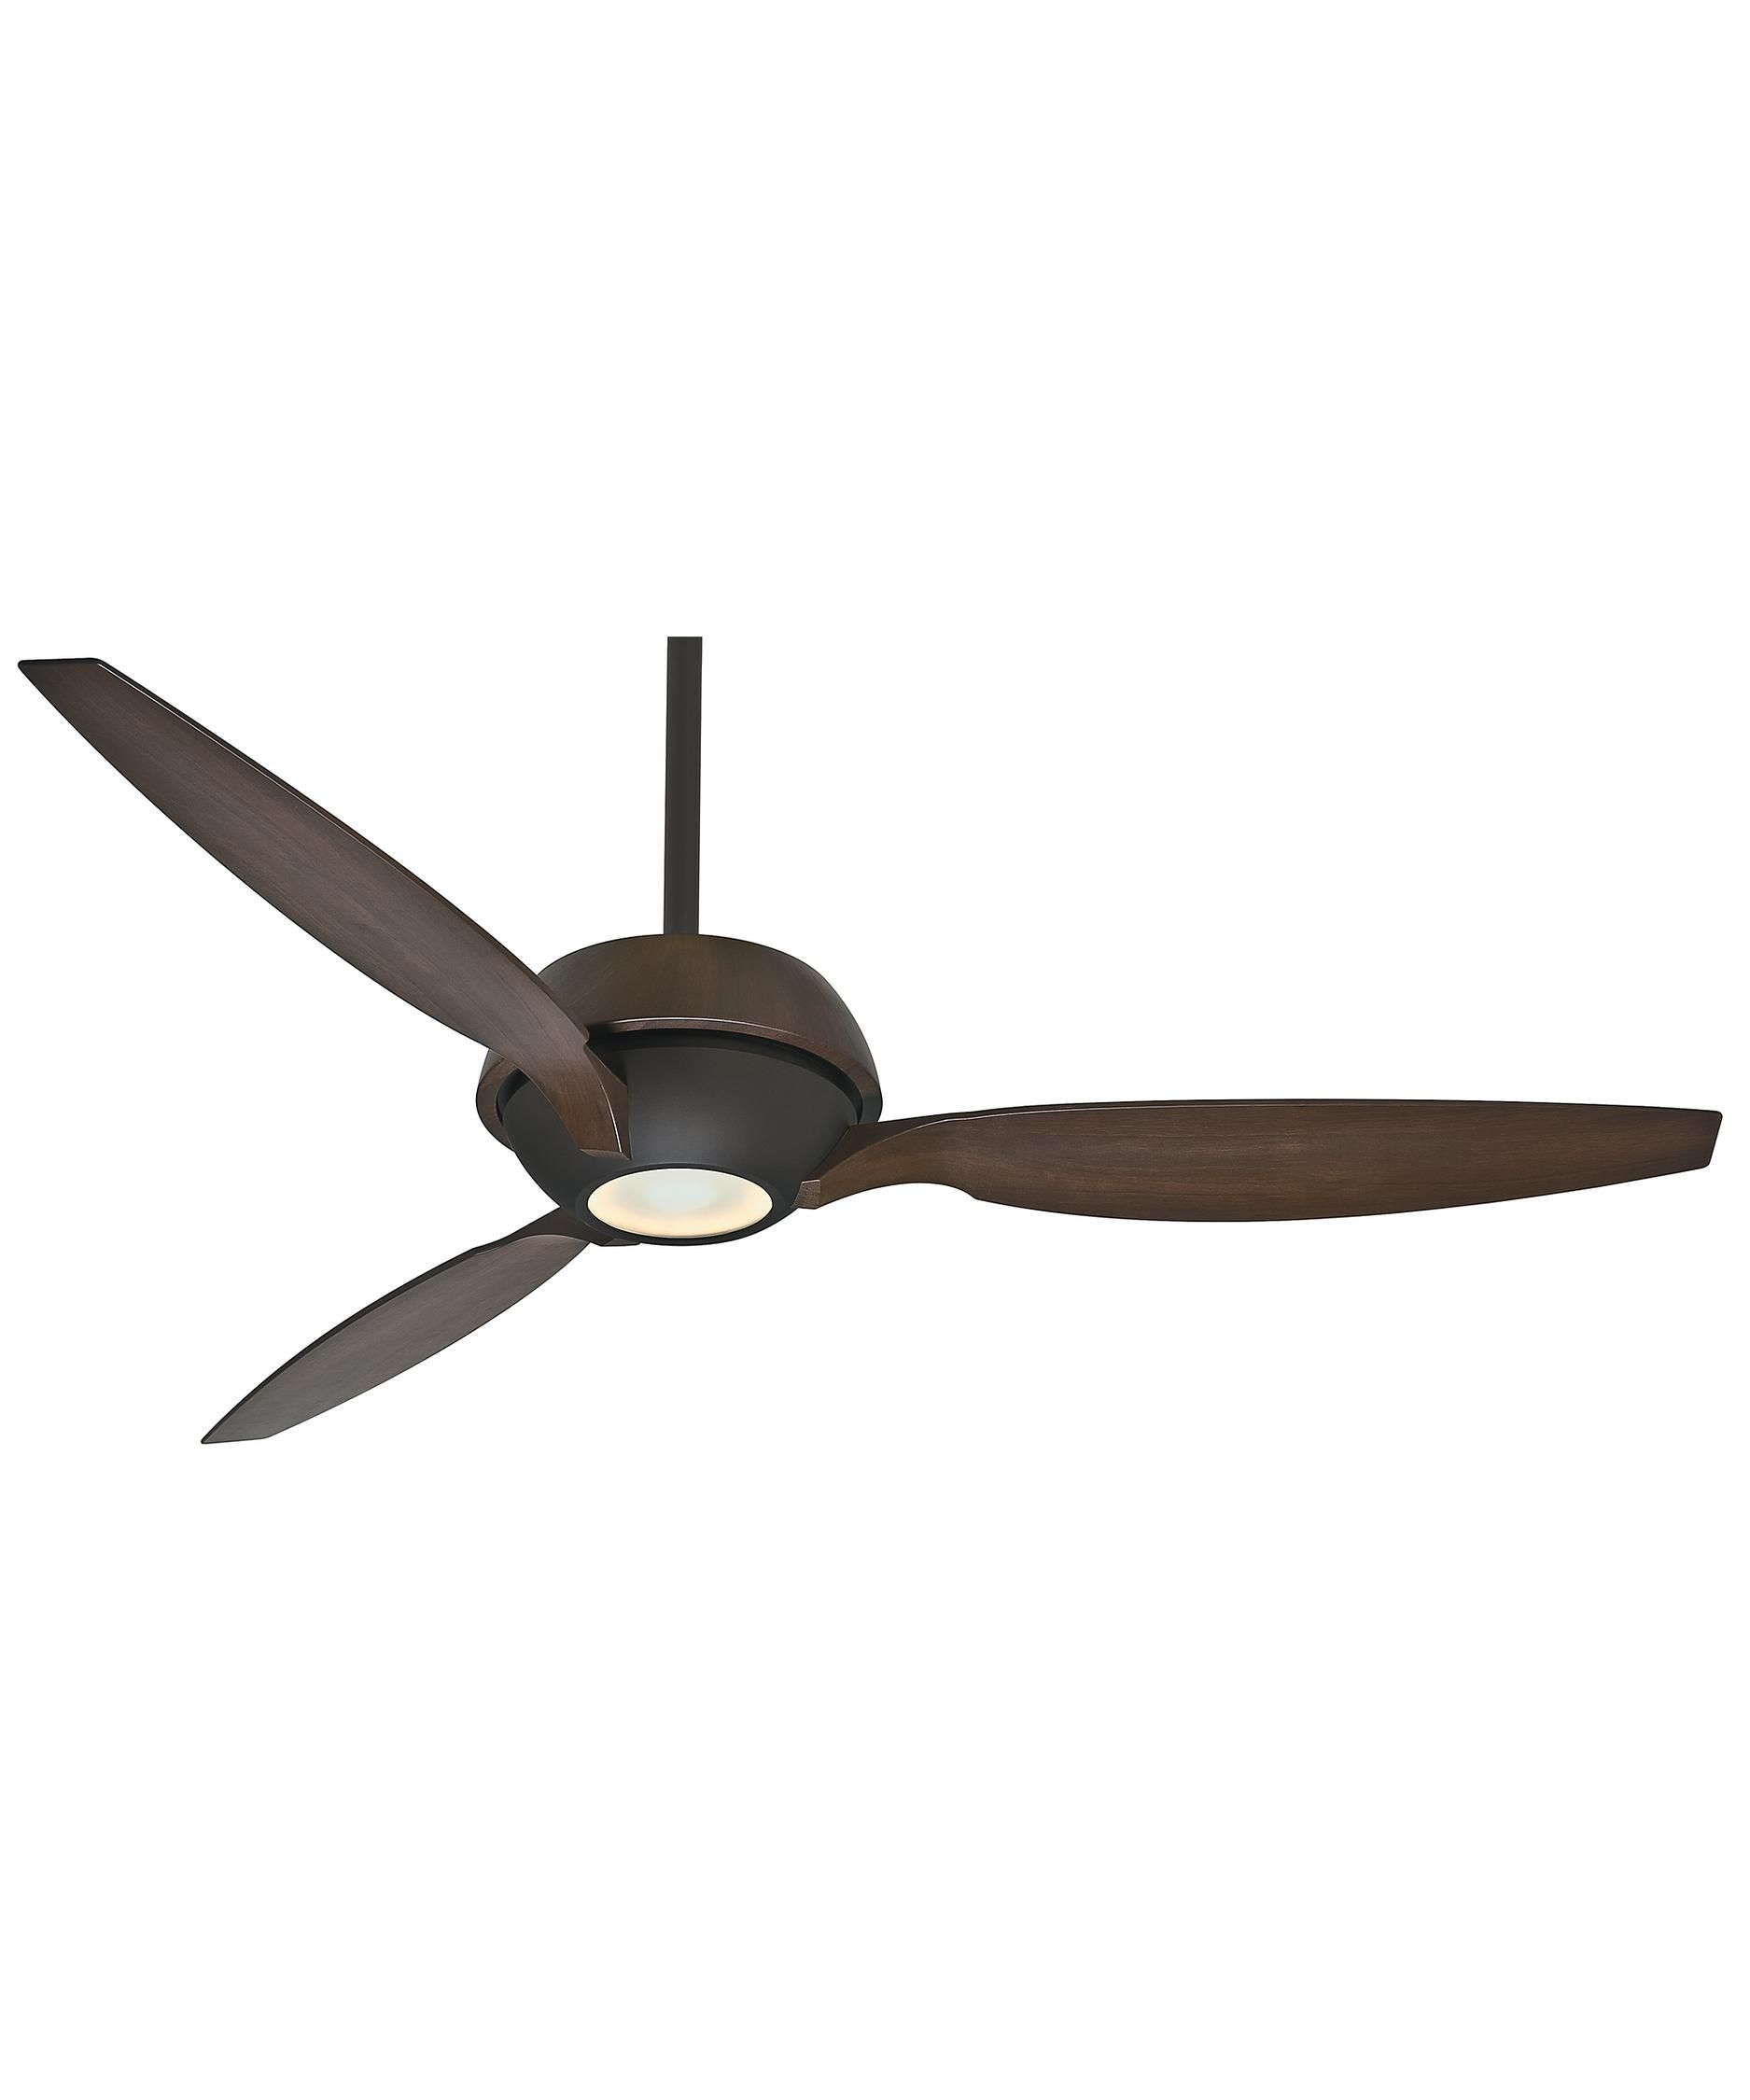 Casablanca Riello 60 Inch Ceiling Fan With Light Kit